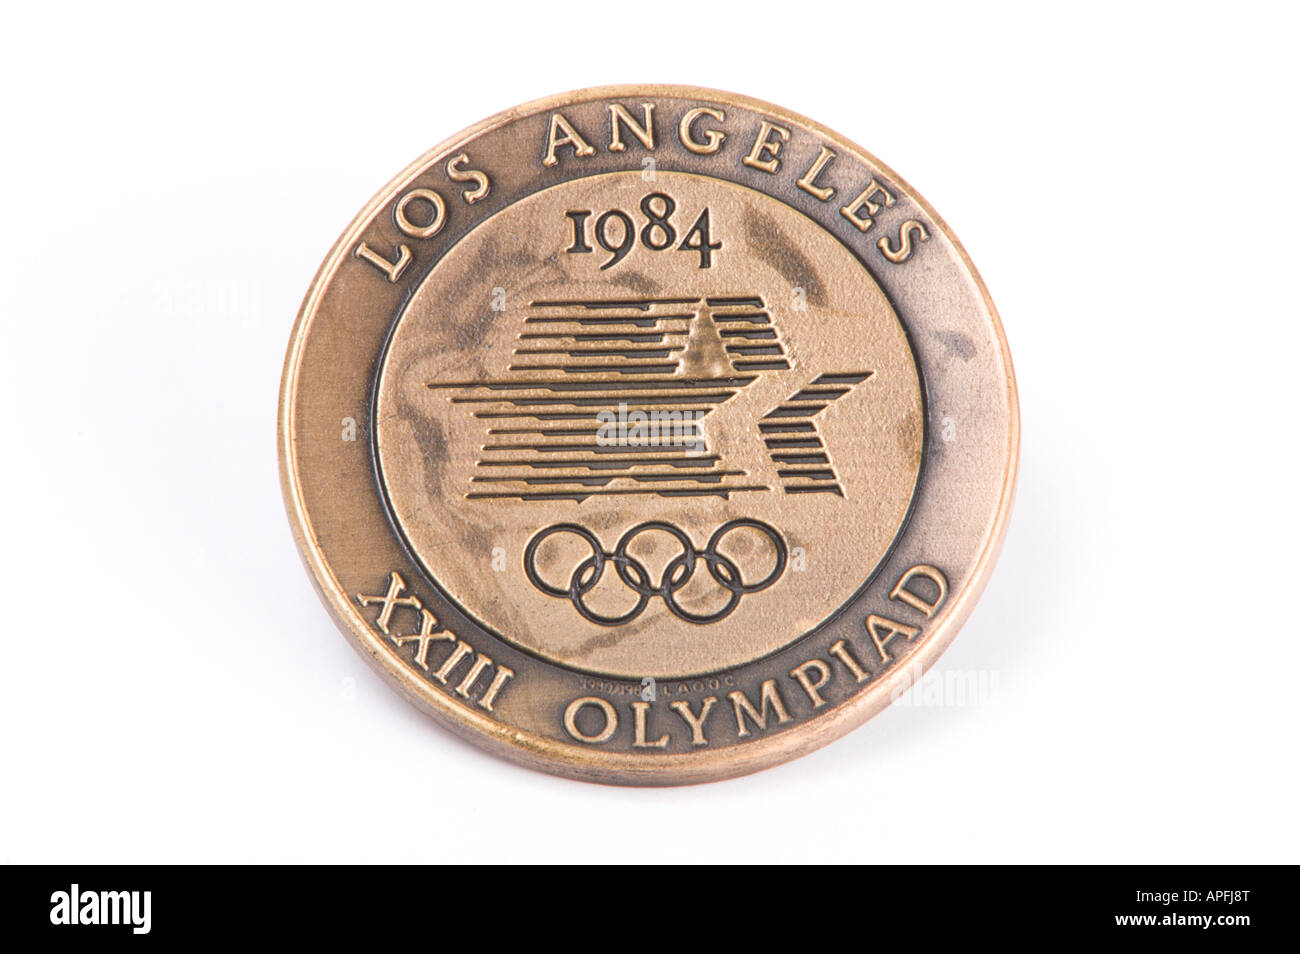 1984 los angeles olympic medallion - Stock Image